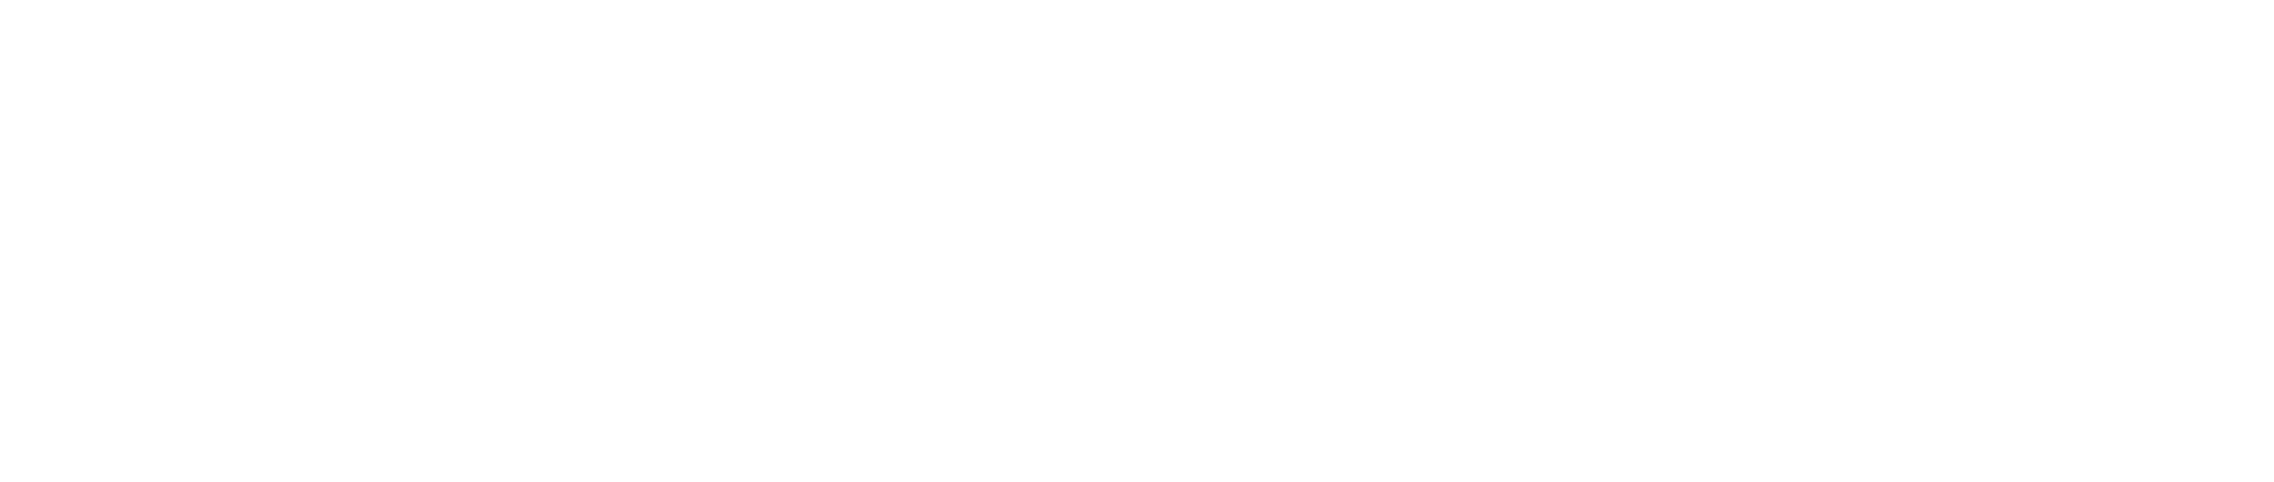 Biggerband, digital culture agency